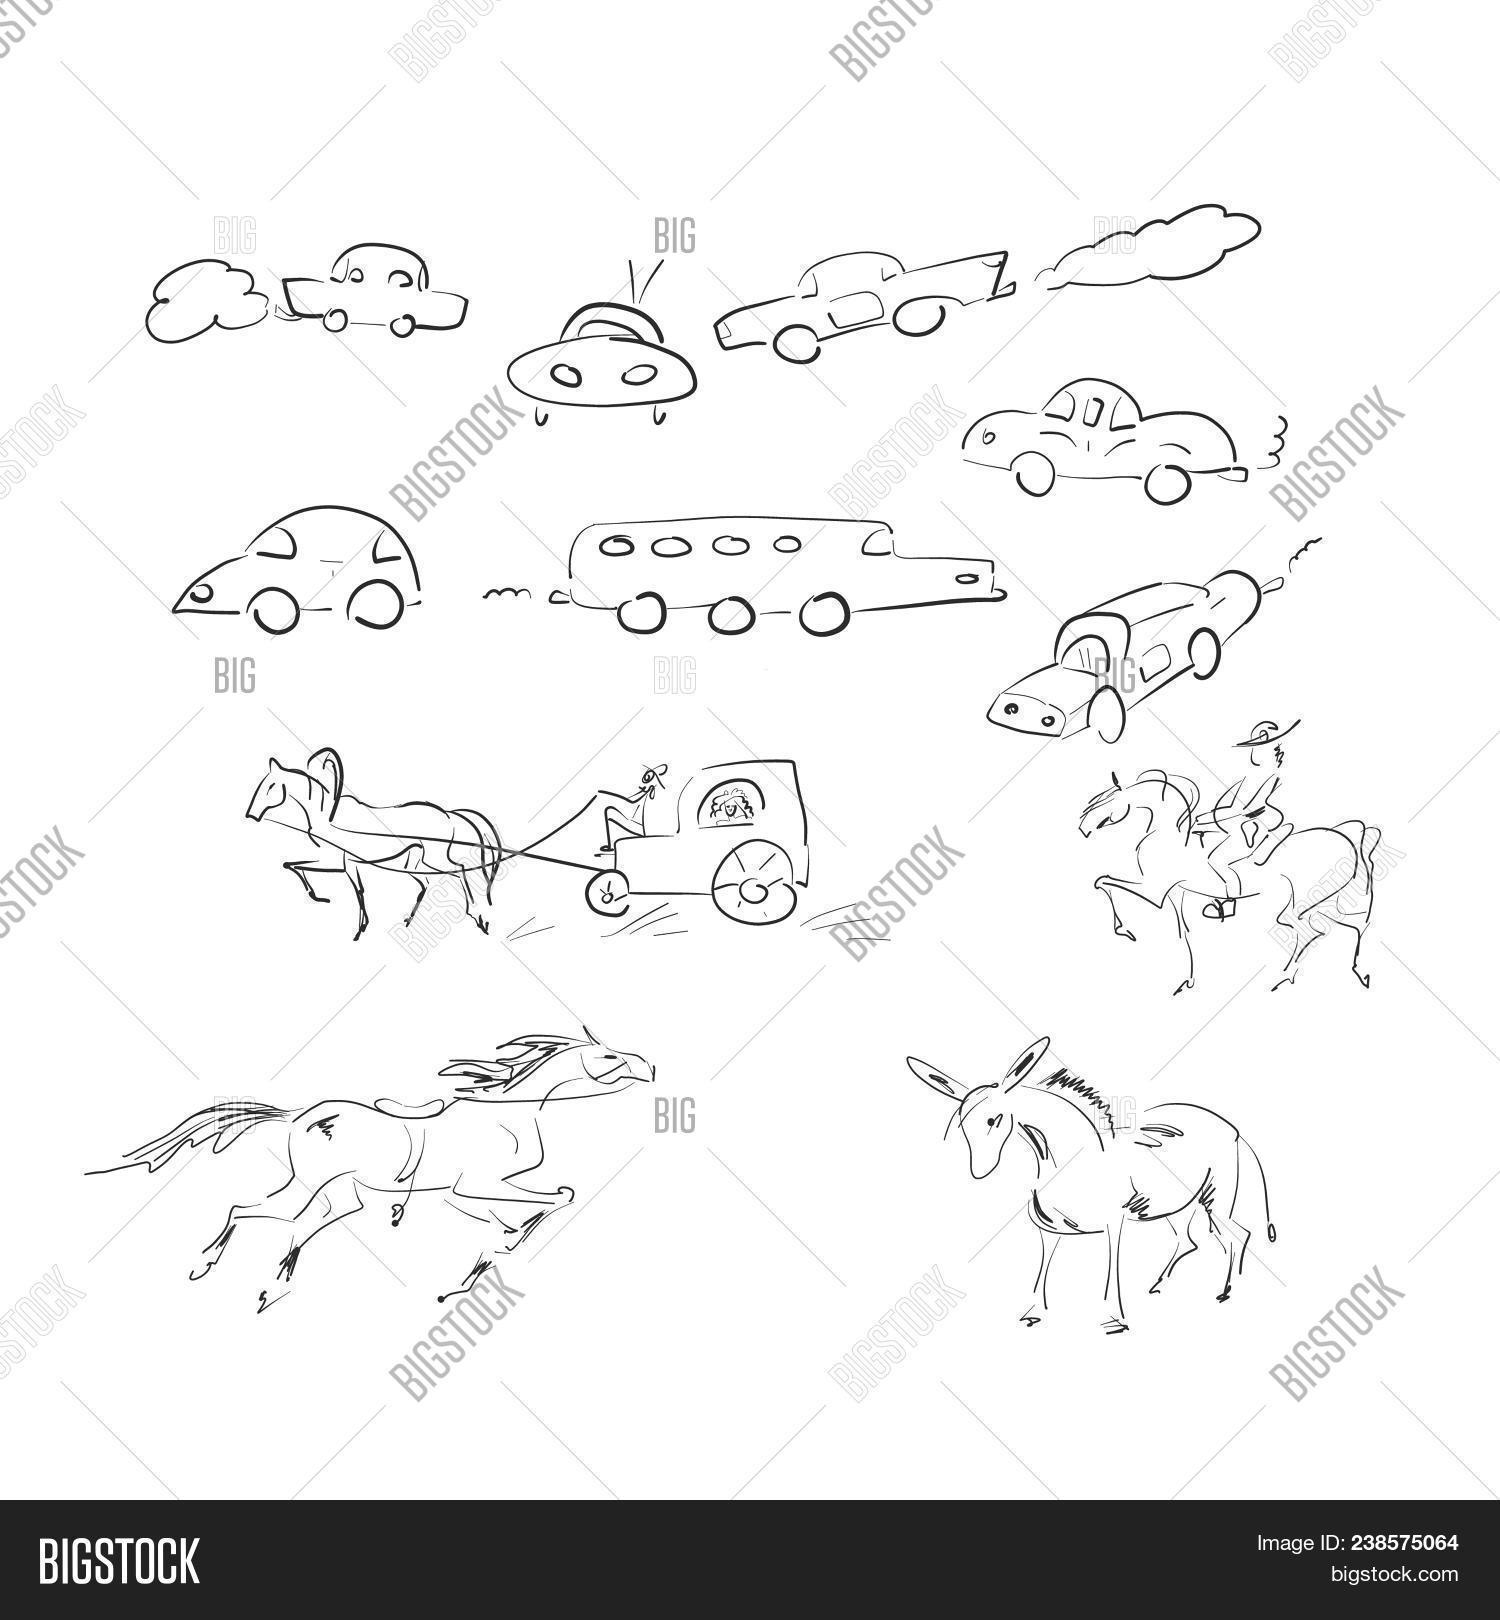 Different sketches of cars and horses on white background abstract drawing machines in a variety